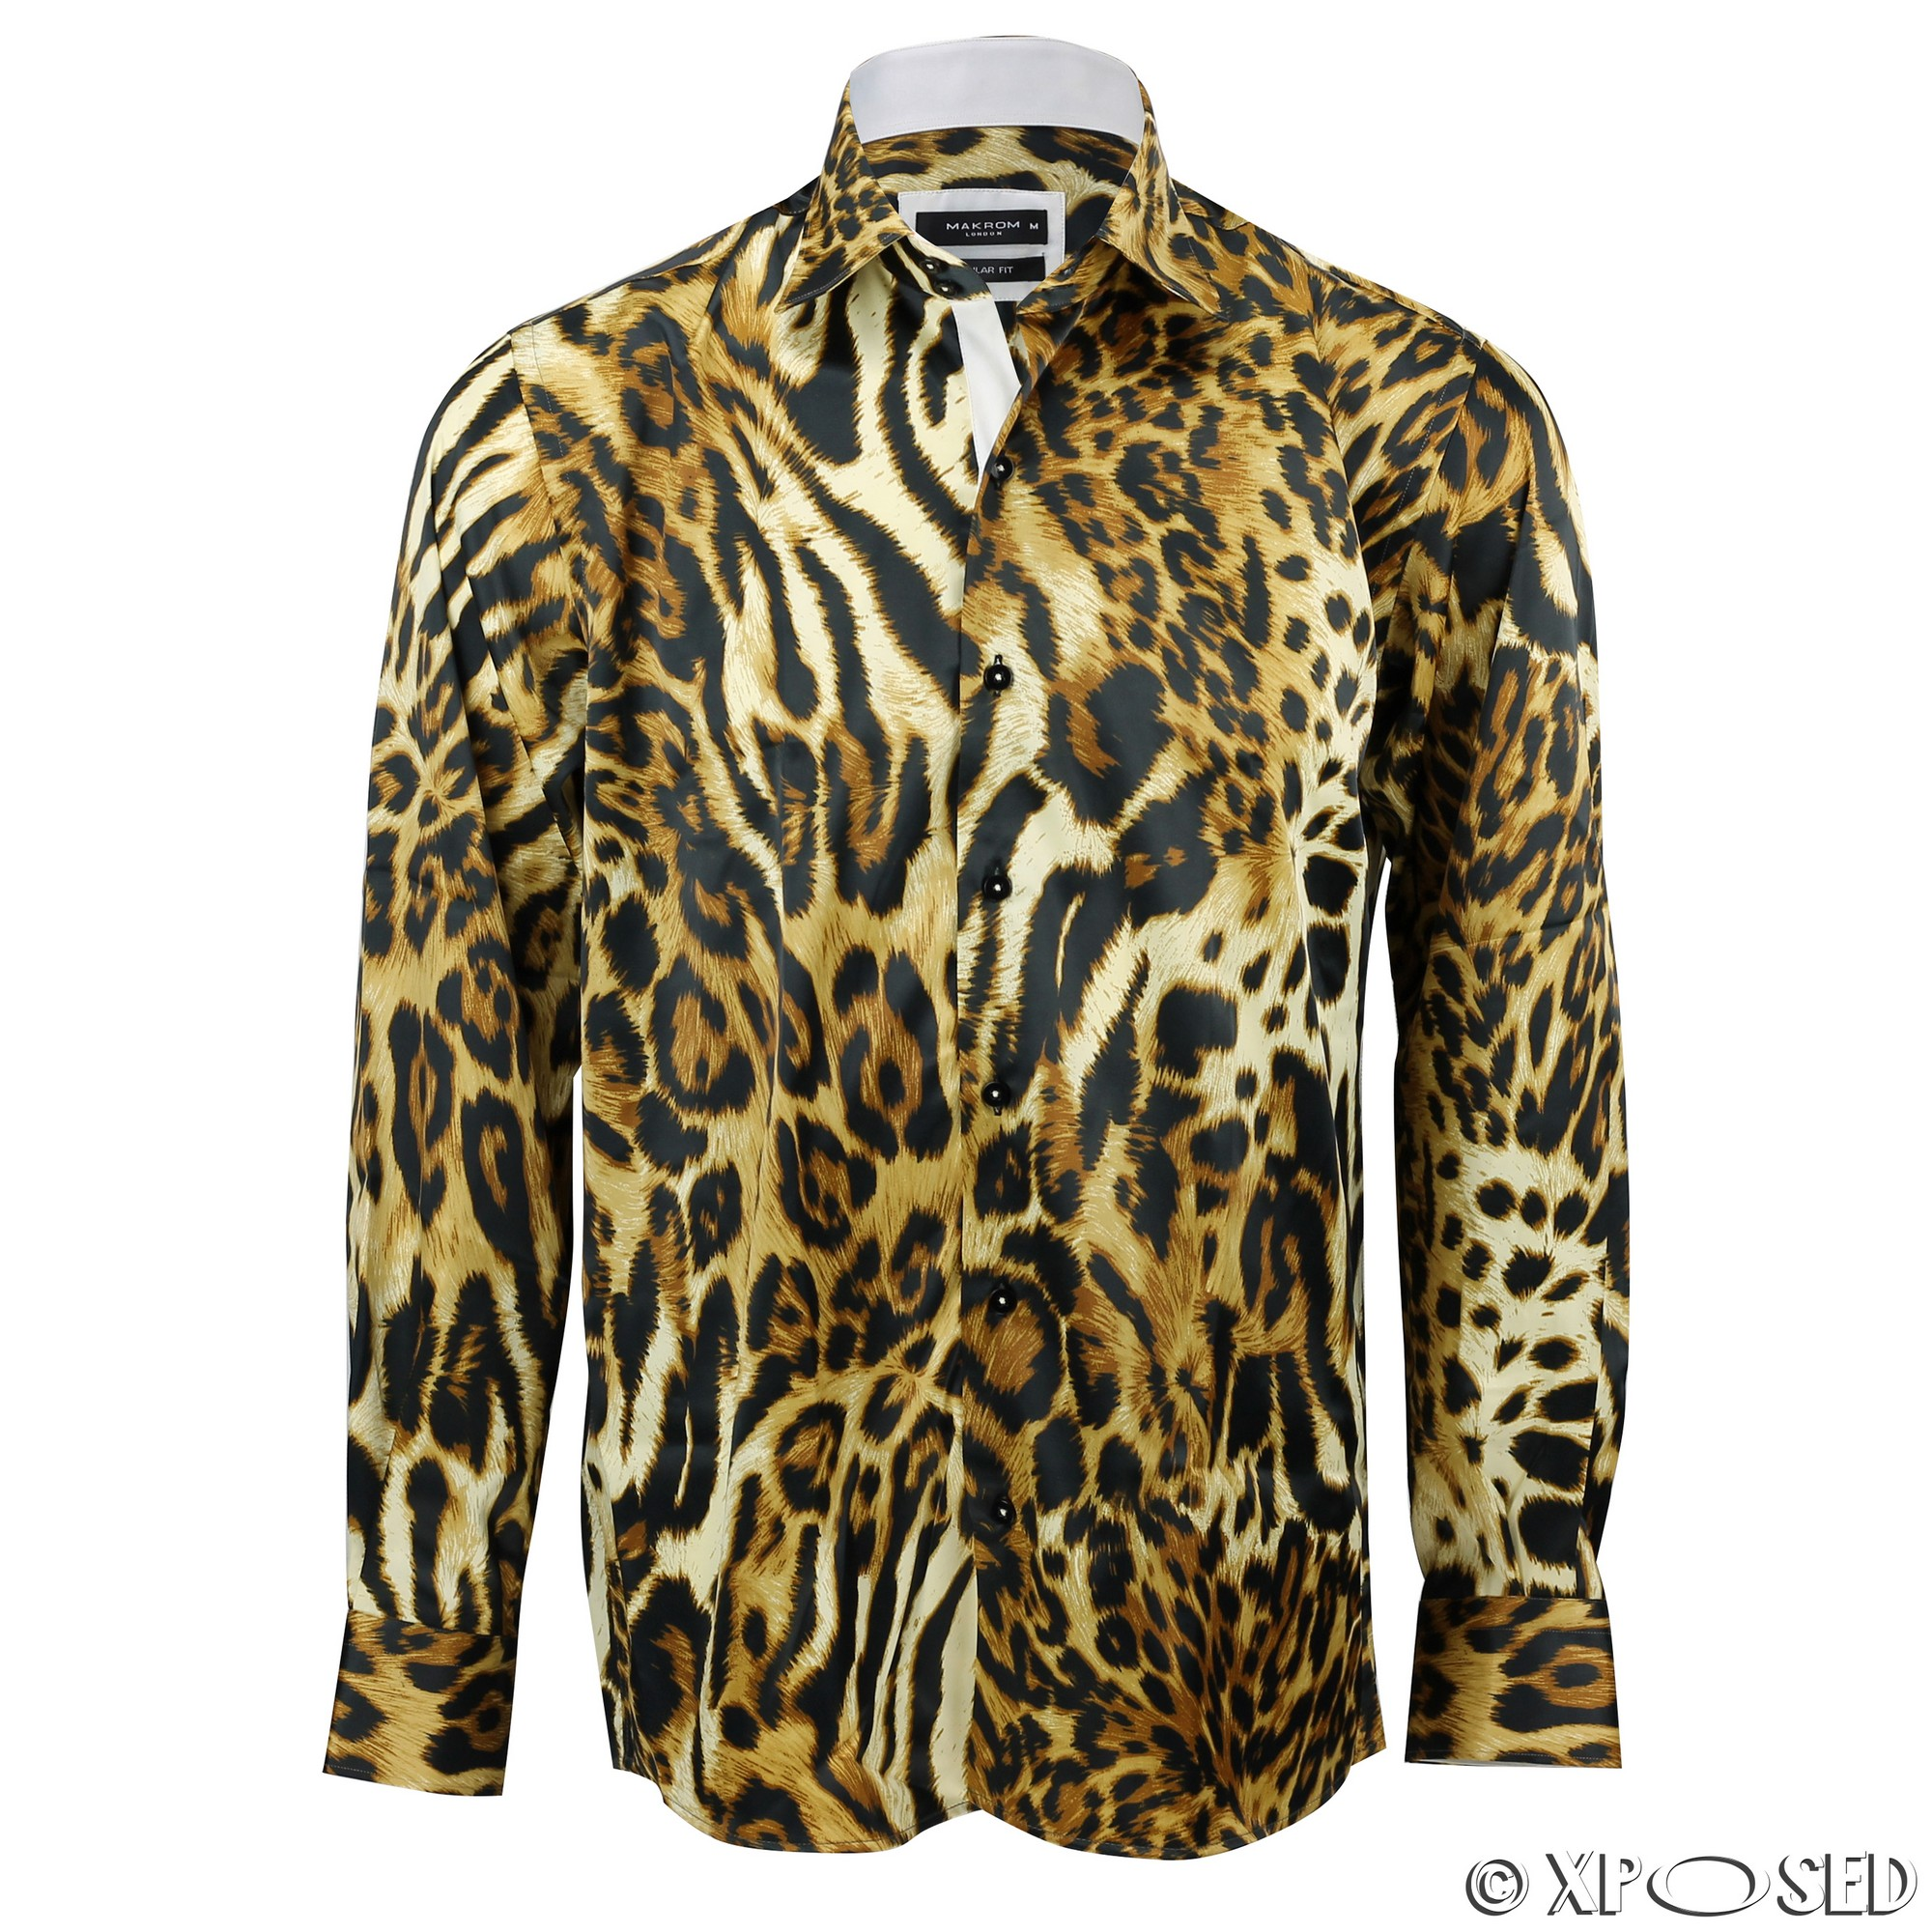 John Lennon Men's Fashion Shirt with Leopard Print on Collar Luxury Fit Dress Shirt is the perfect top for your work or leisure style. Size: Medium.